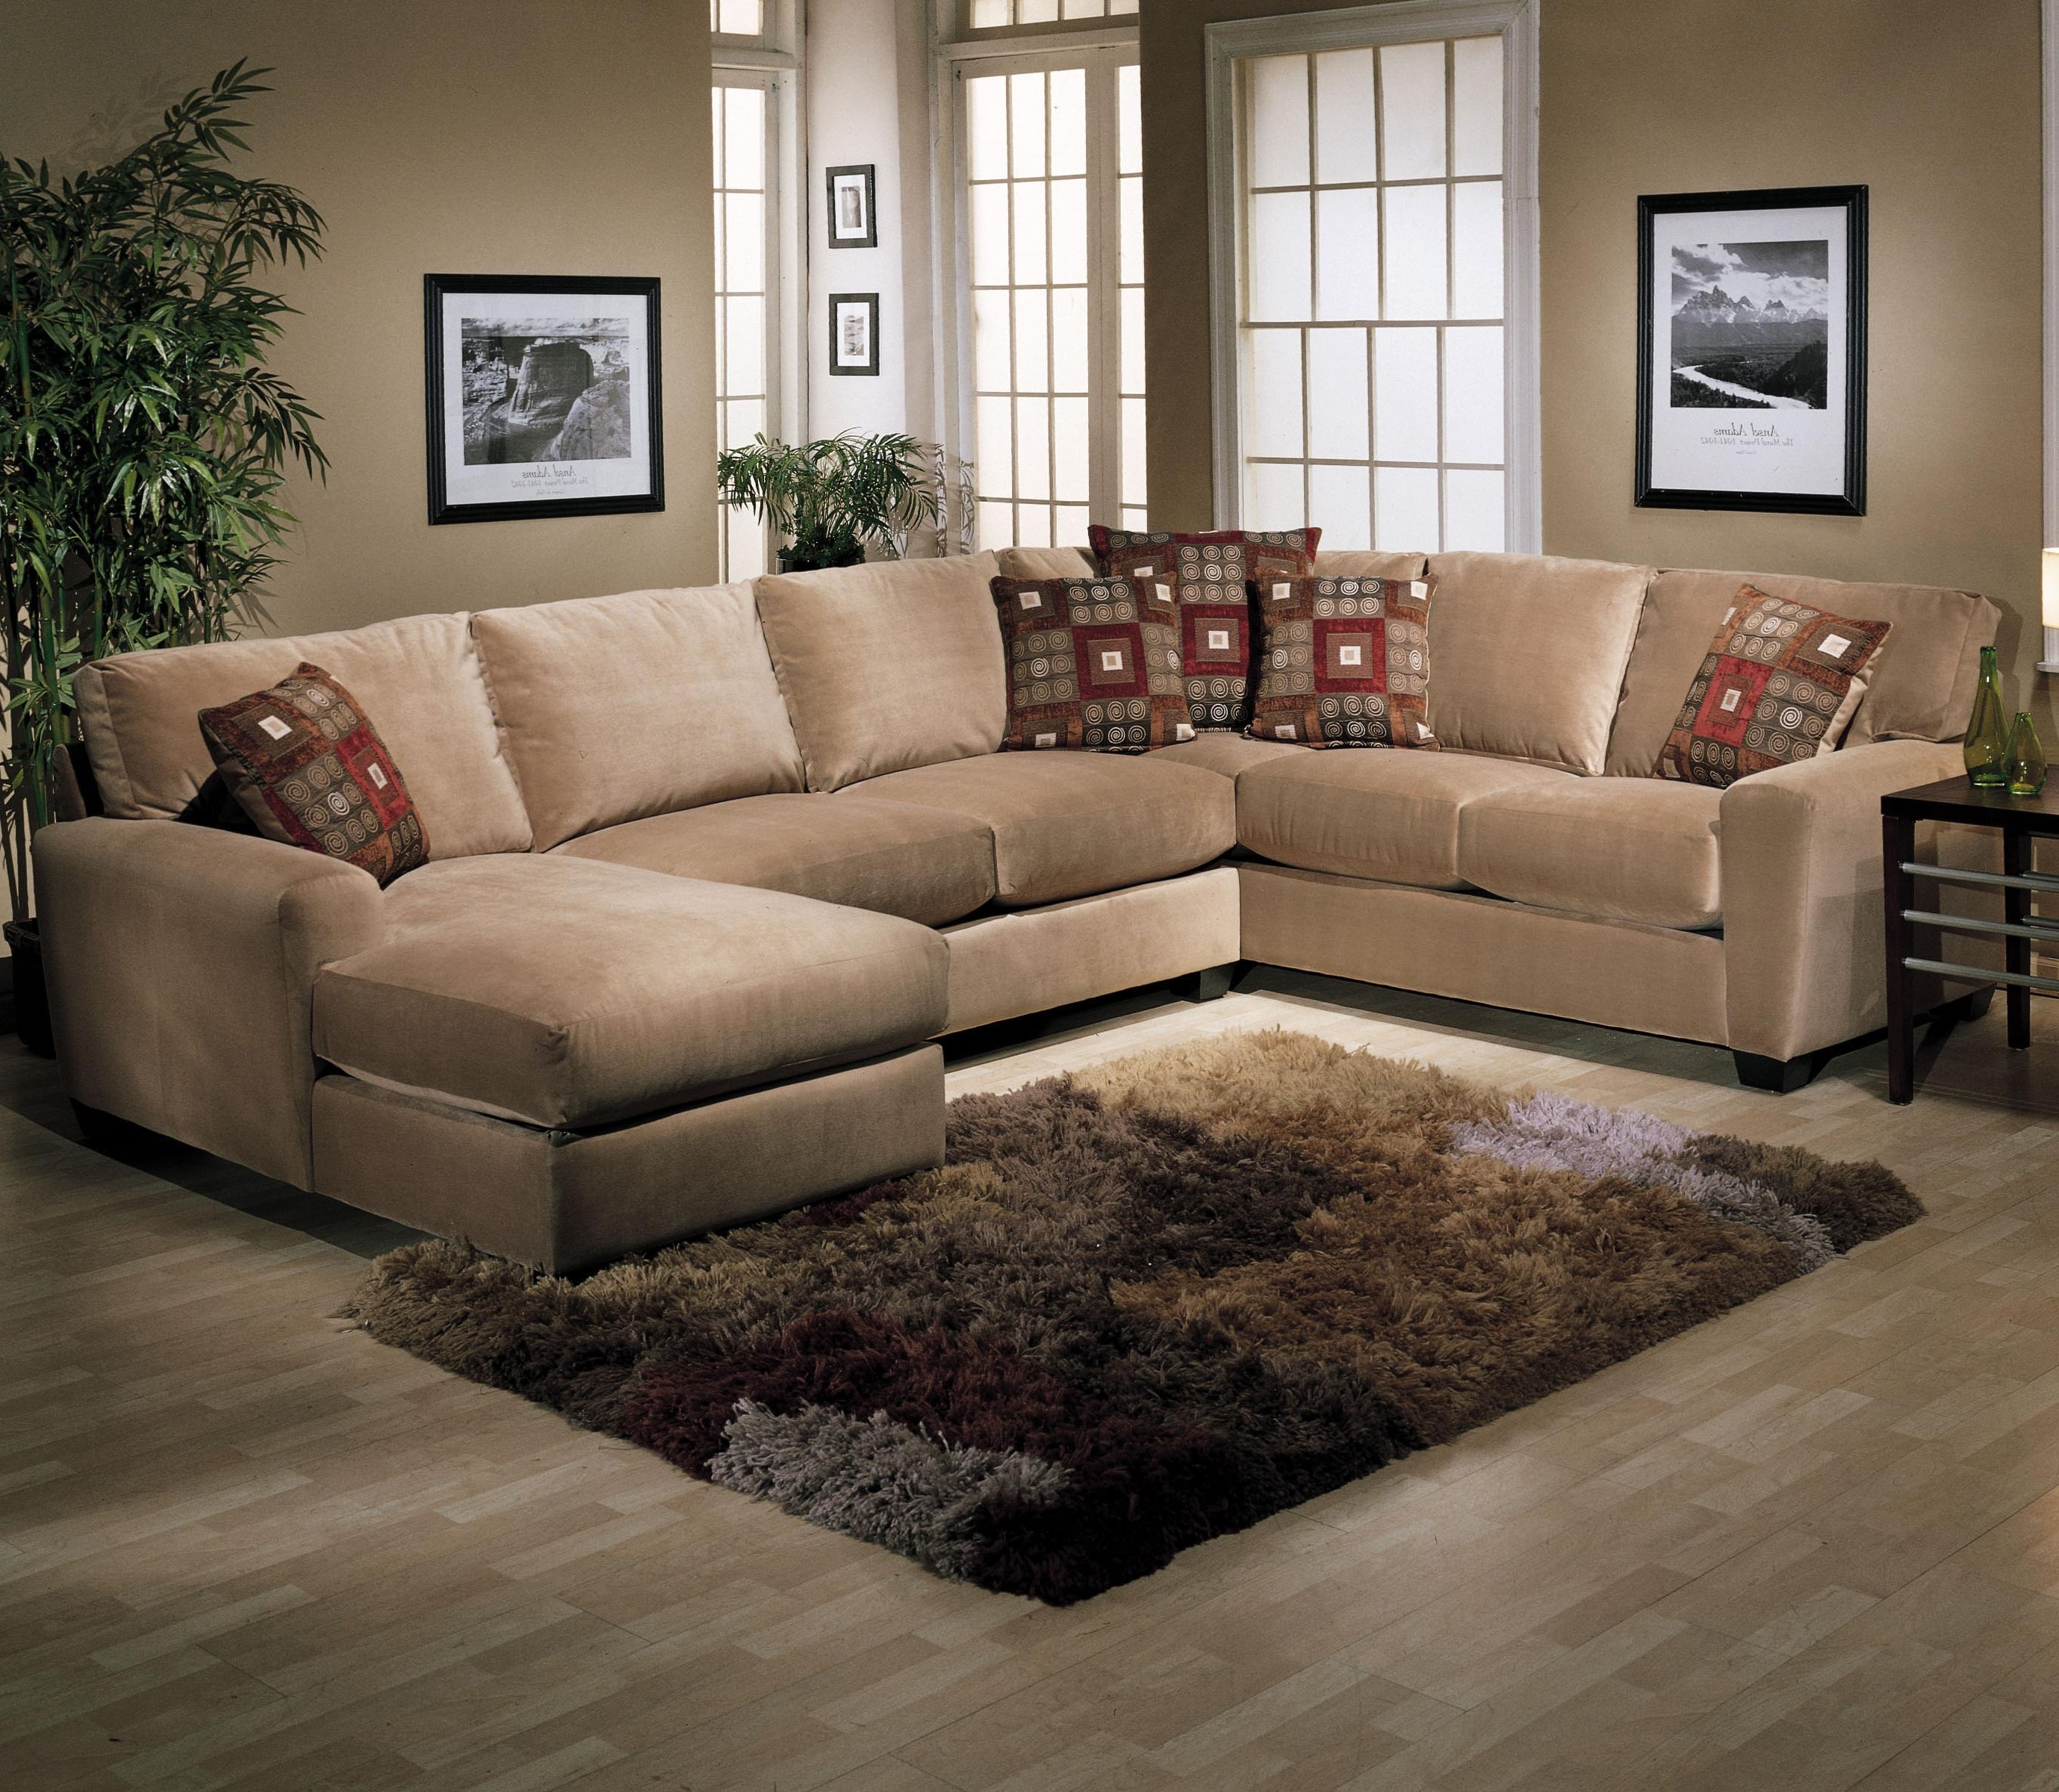 Well Known L Shaped Sofa With Chaise Lounge – Home And Textiles In L Shaped Sectionals With Chaise (View 4 of 15)